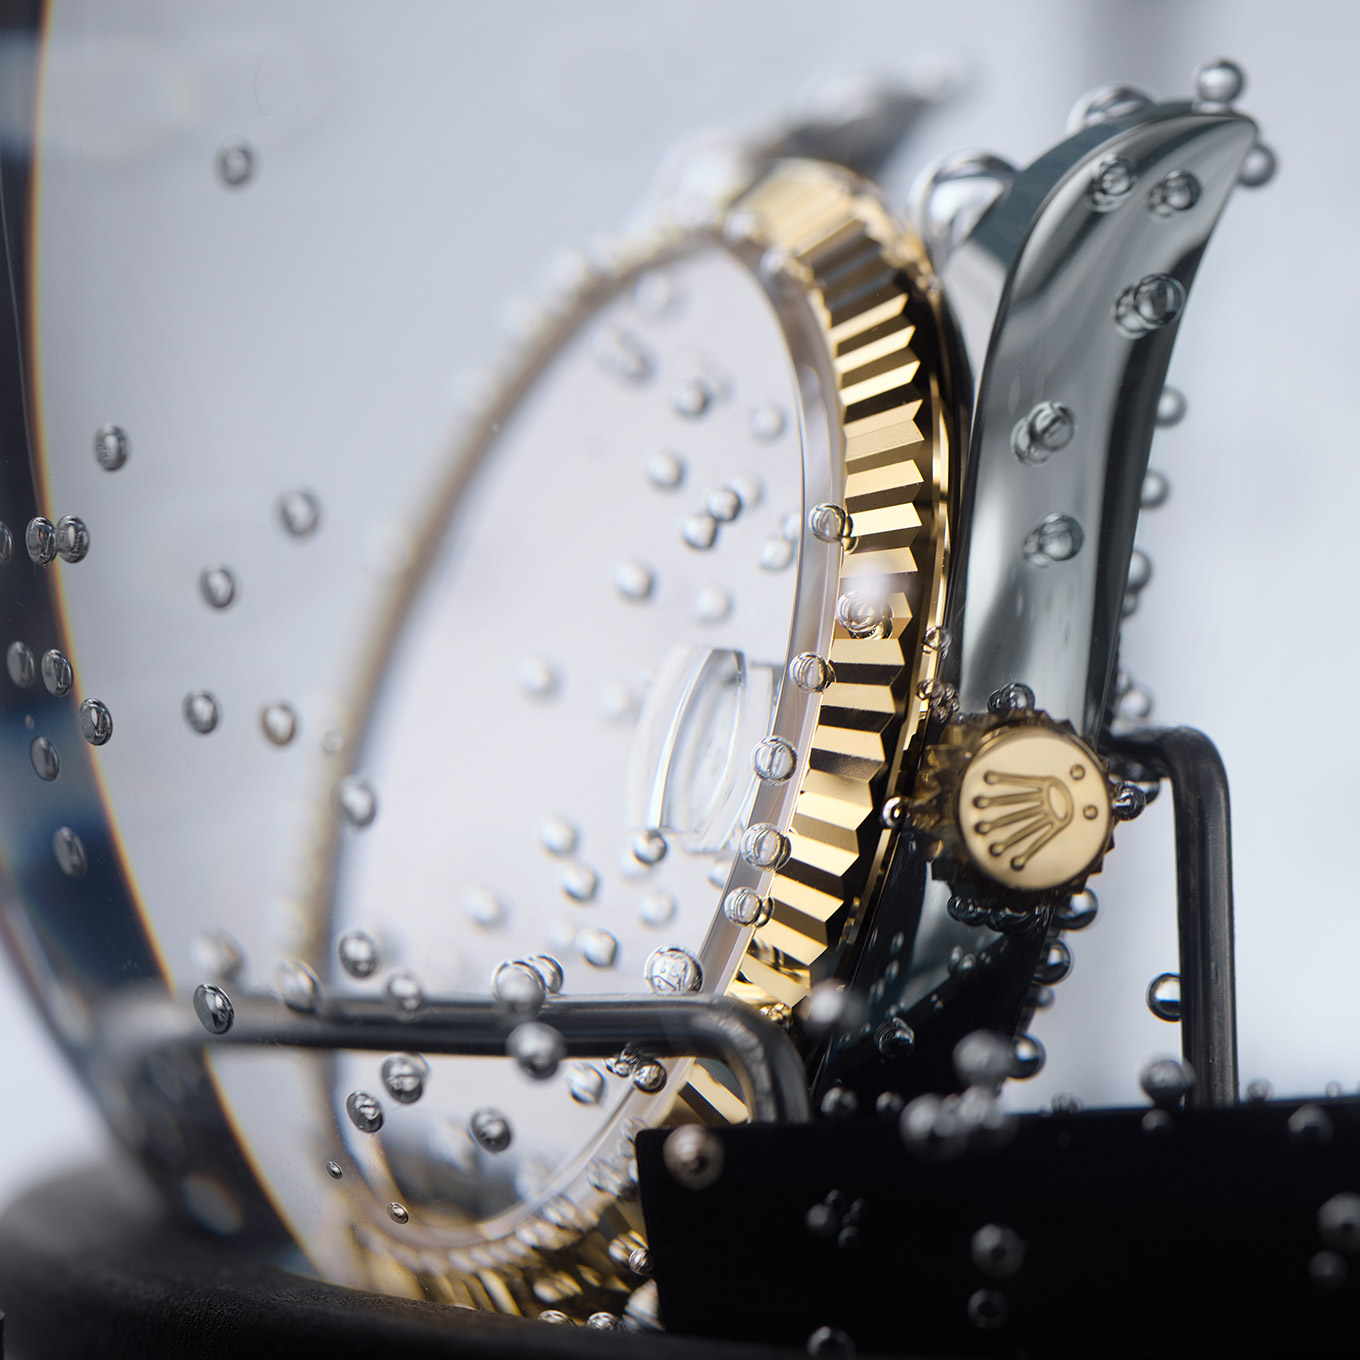 rolex-servicing-procedure-assembly-of-the-case